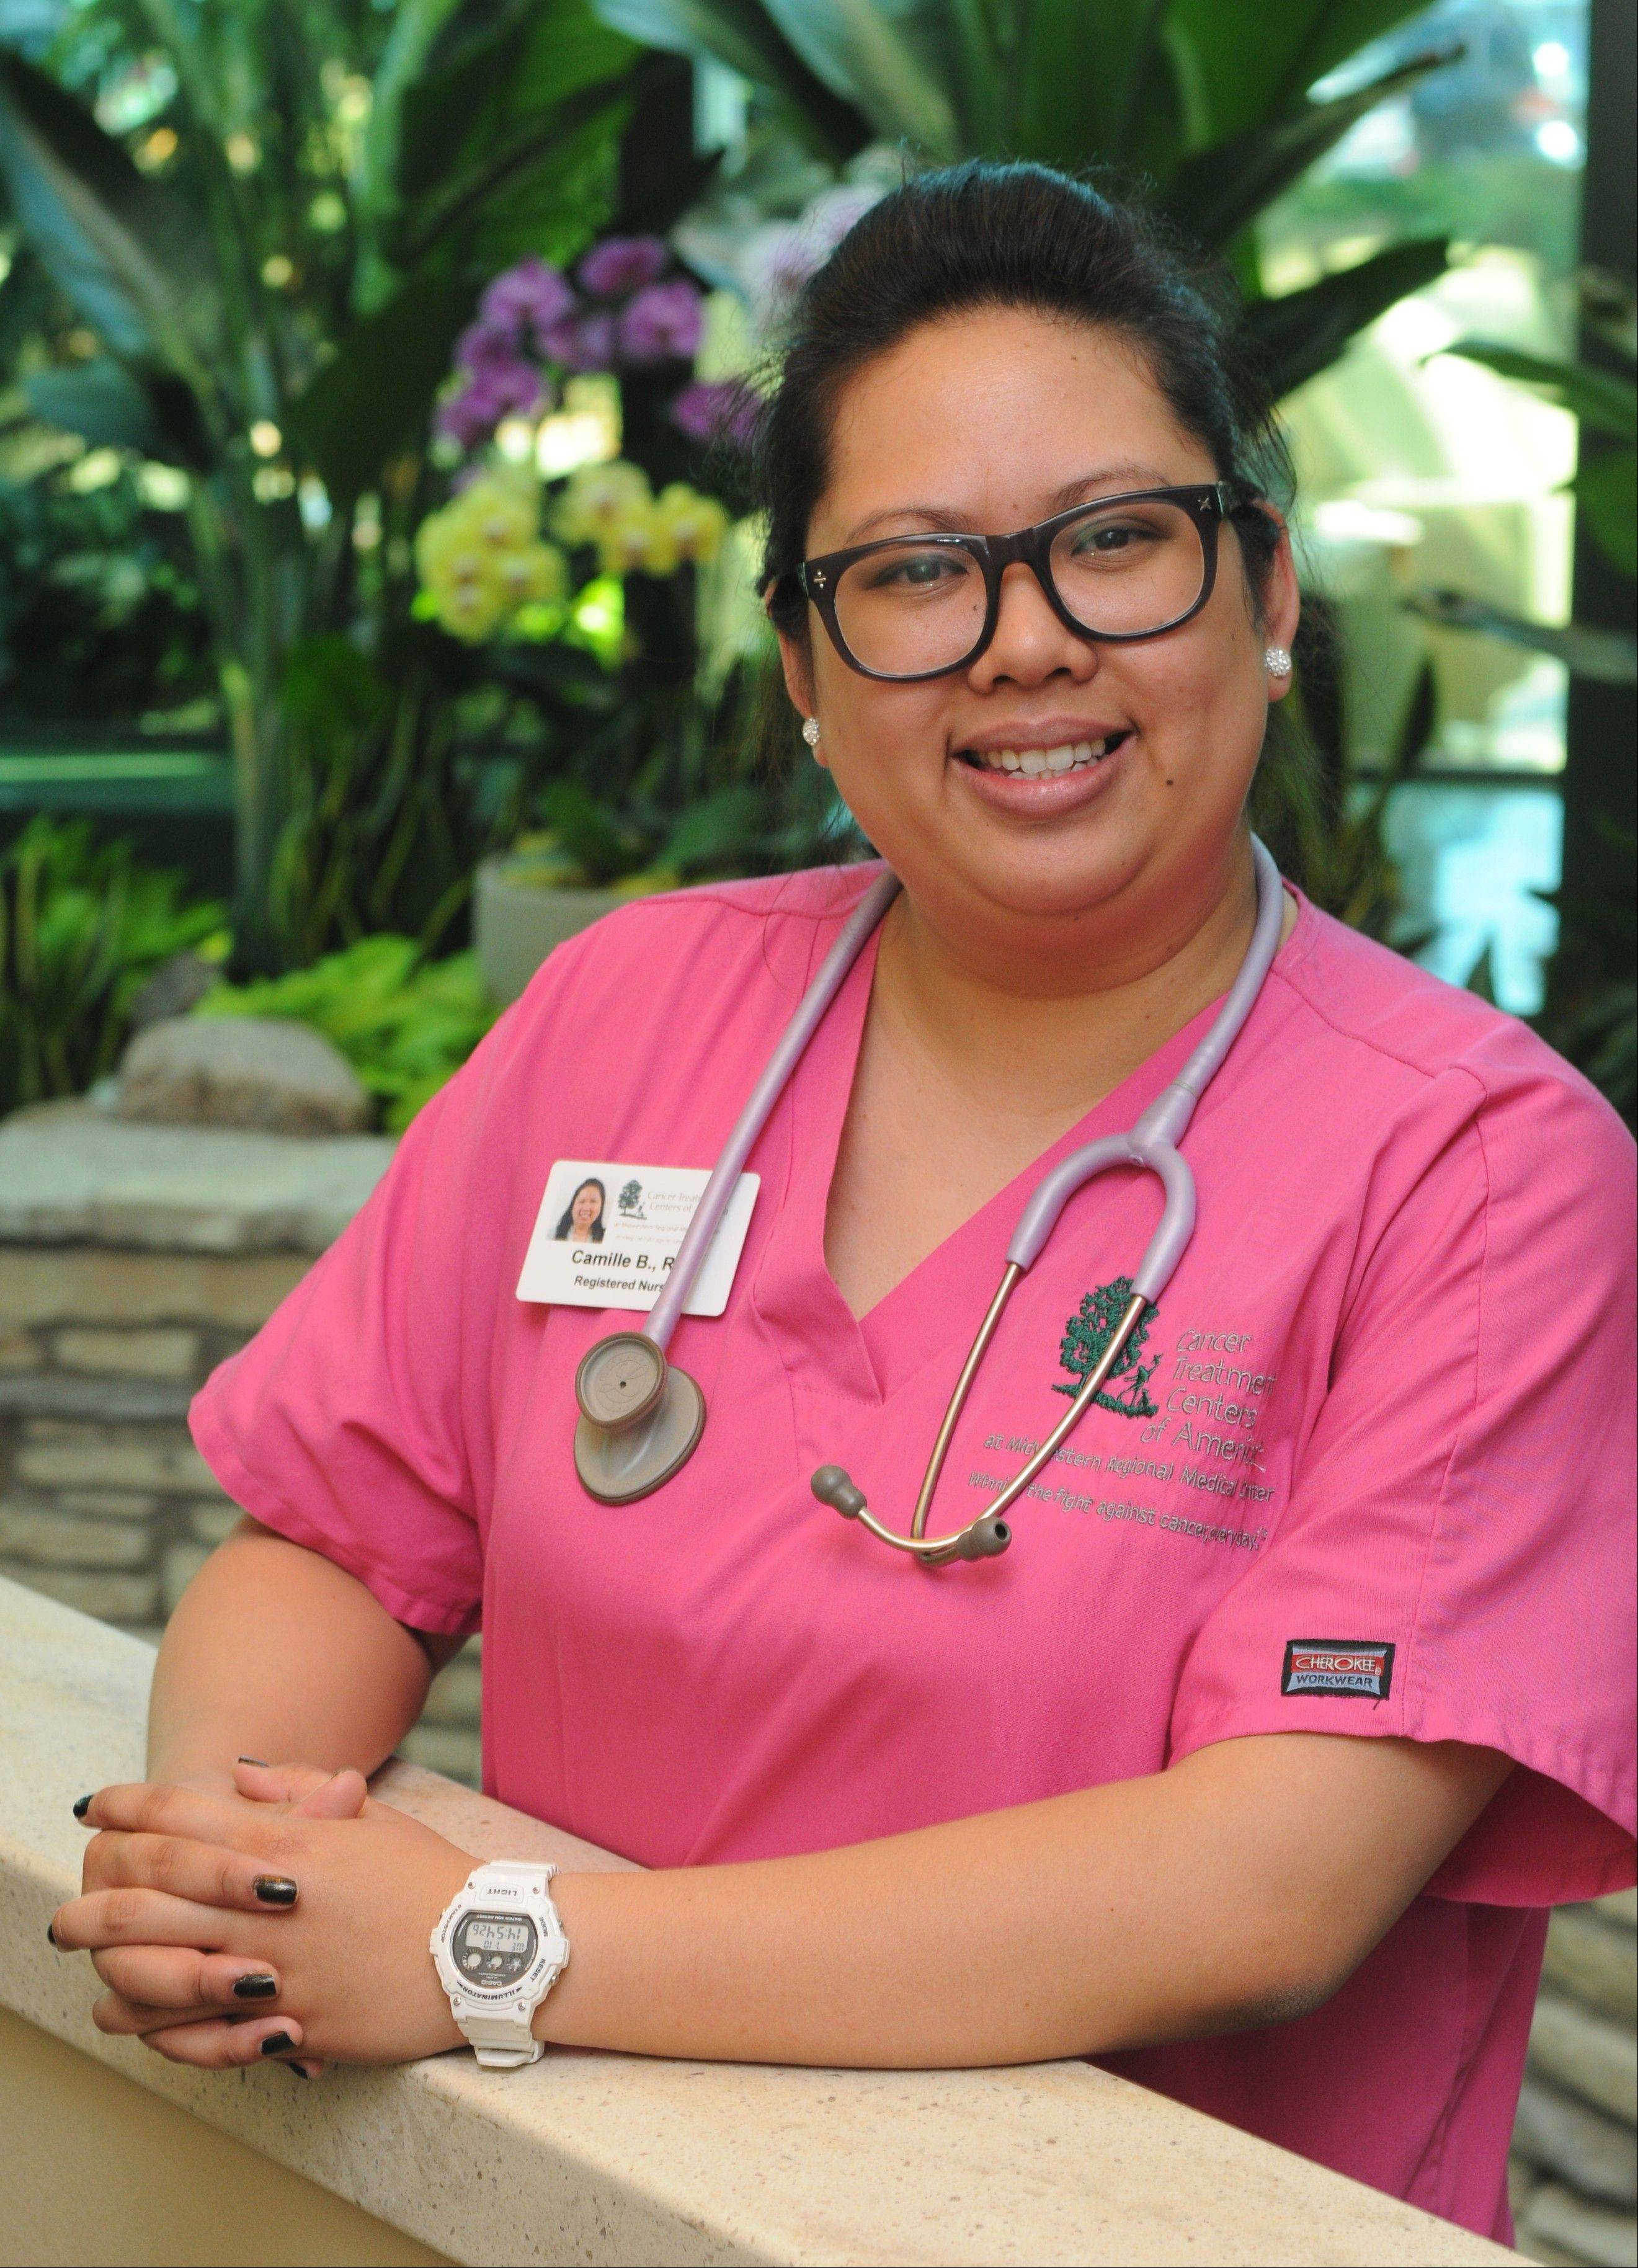 Camille Bejar, 28, was in the middle of nursing school when both her parents died from cancer. Today, Bejar says her career as a nurse for cancer patients is dedicated to them.